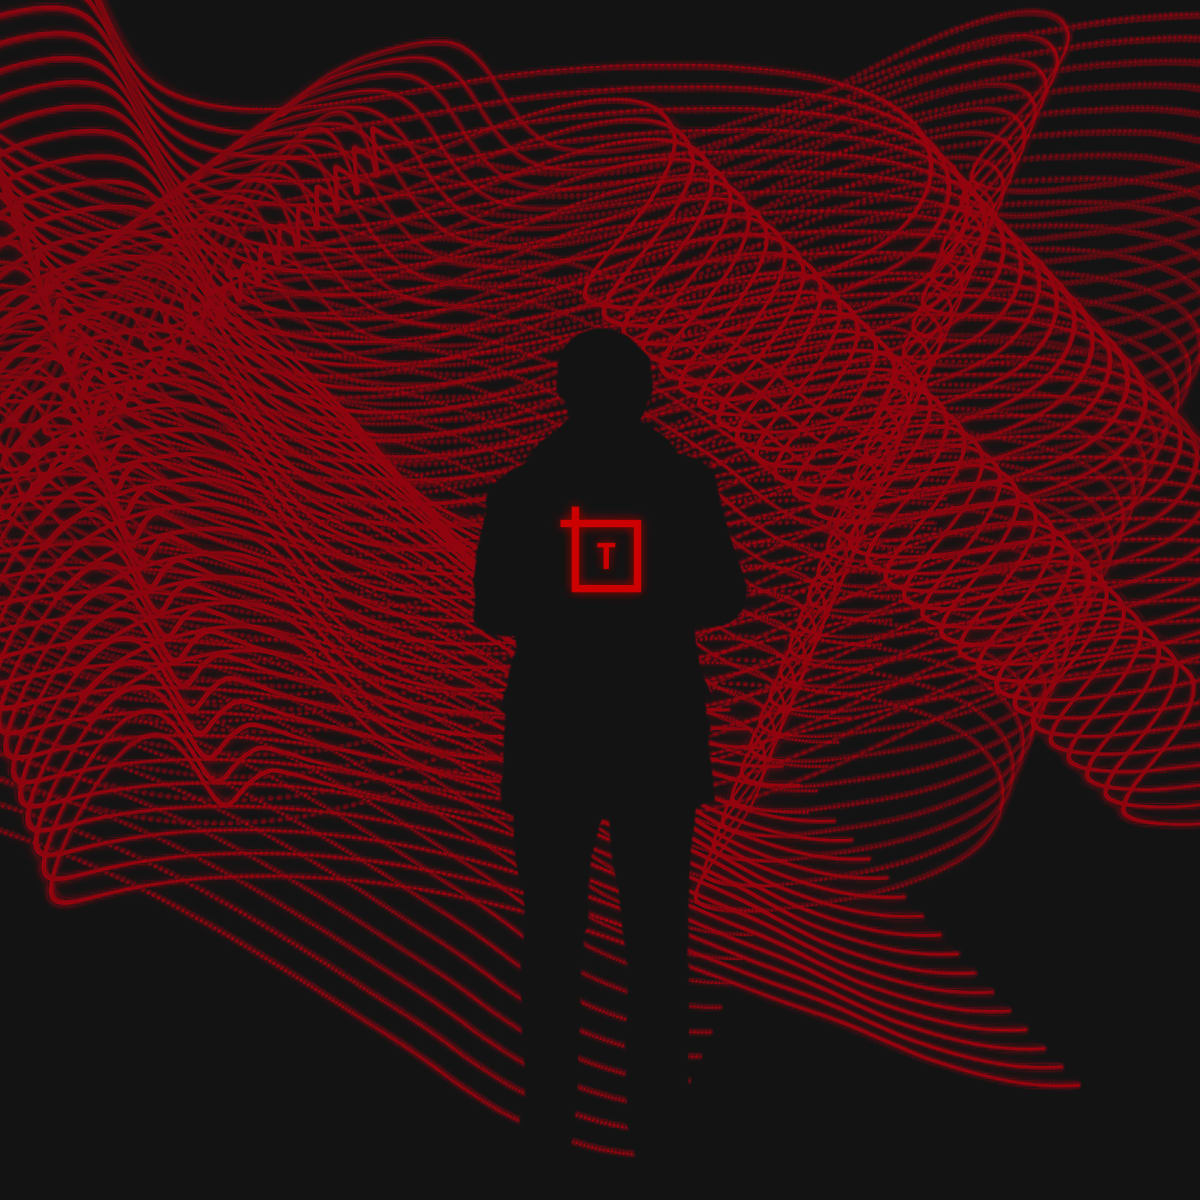 silhoutte of person with Transform logo on red background